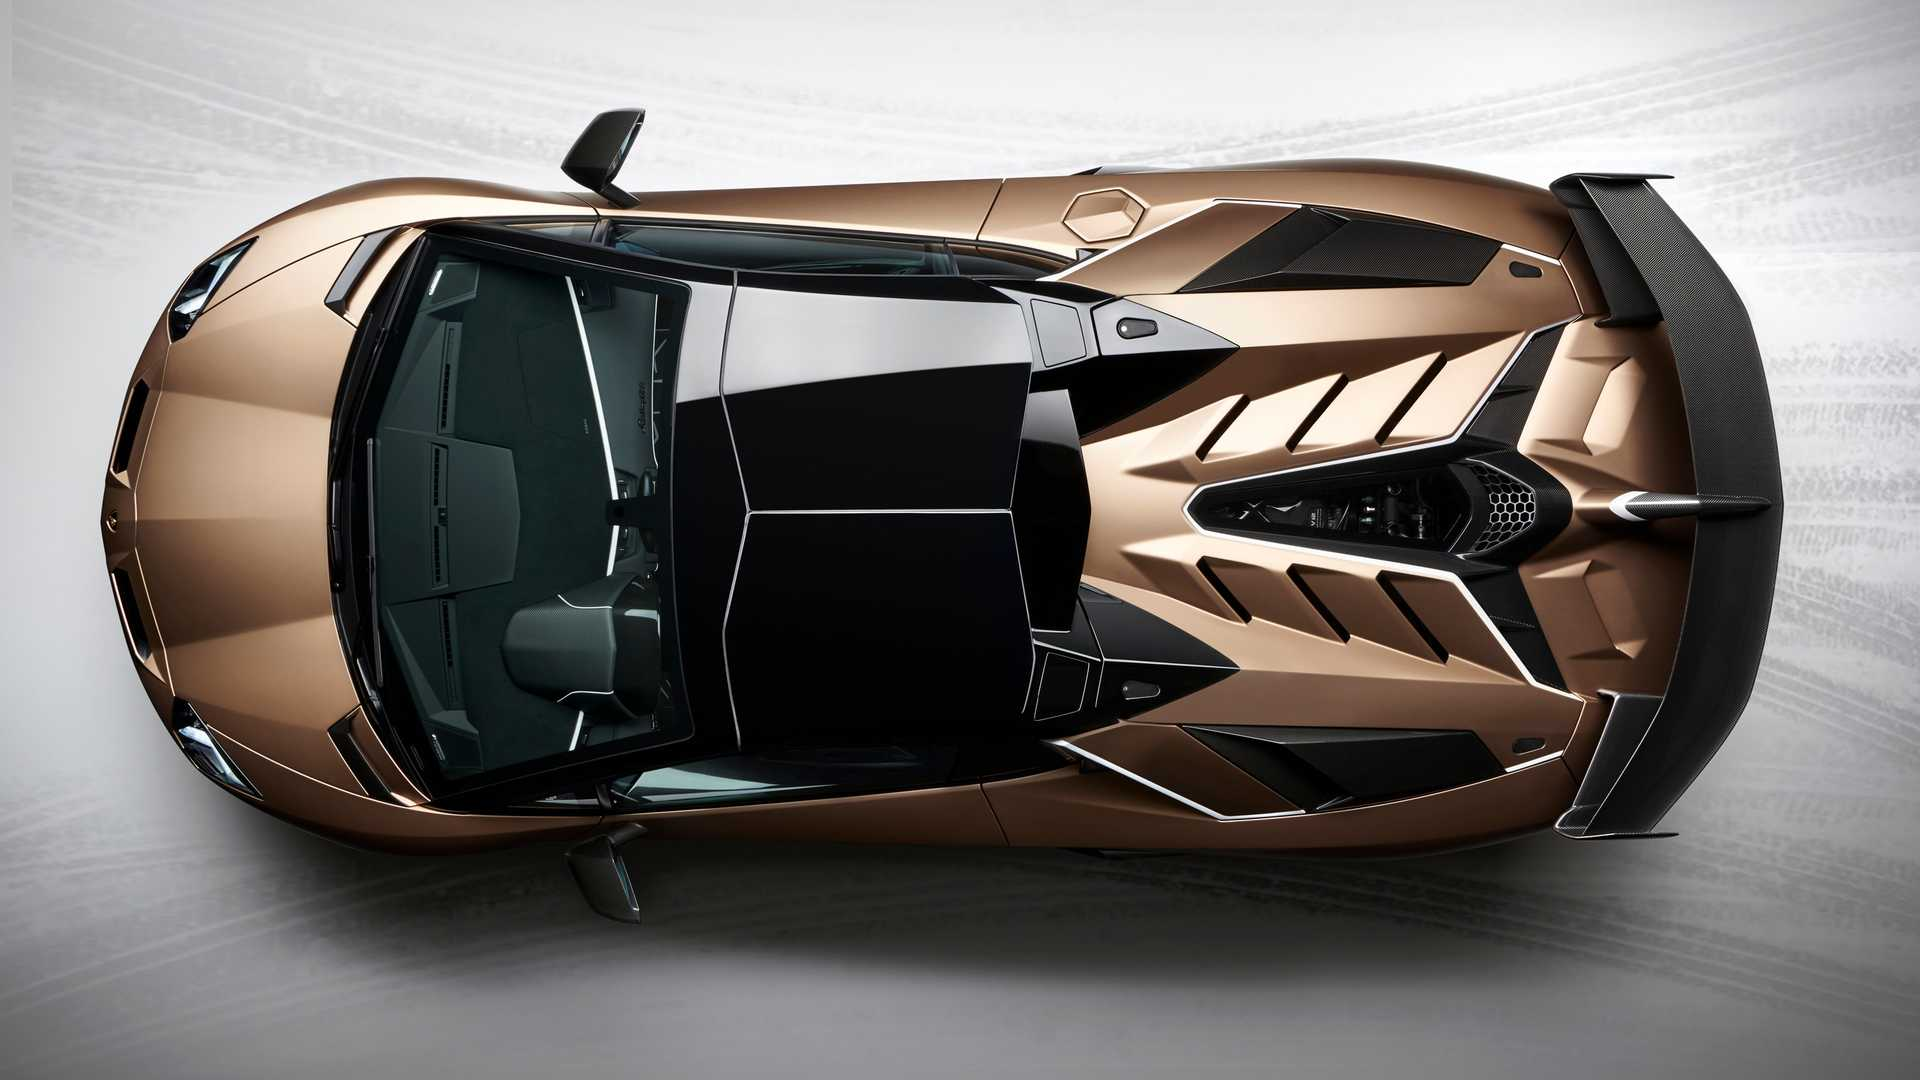 35 The 2020 Lamborghini Aventador Photos